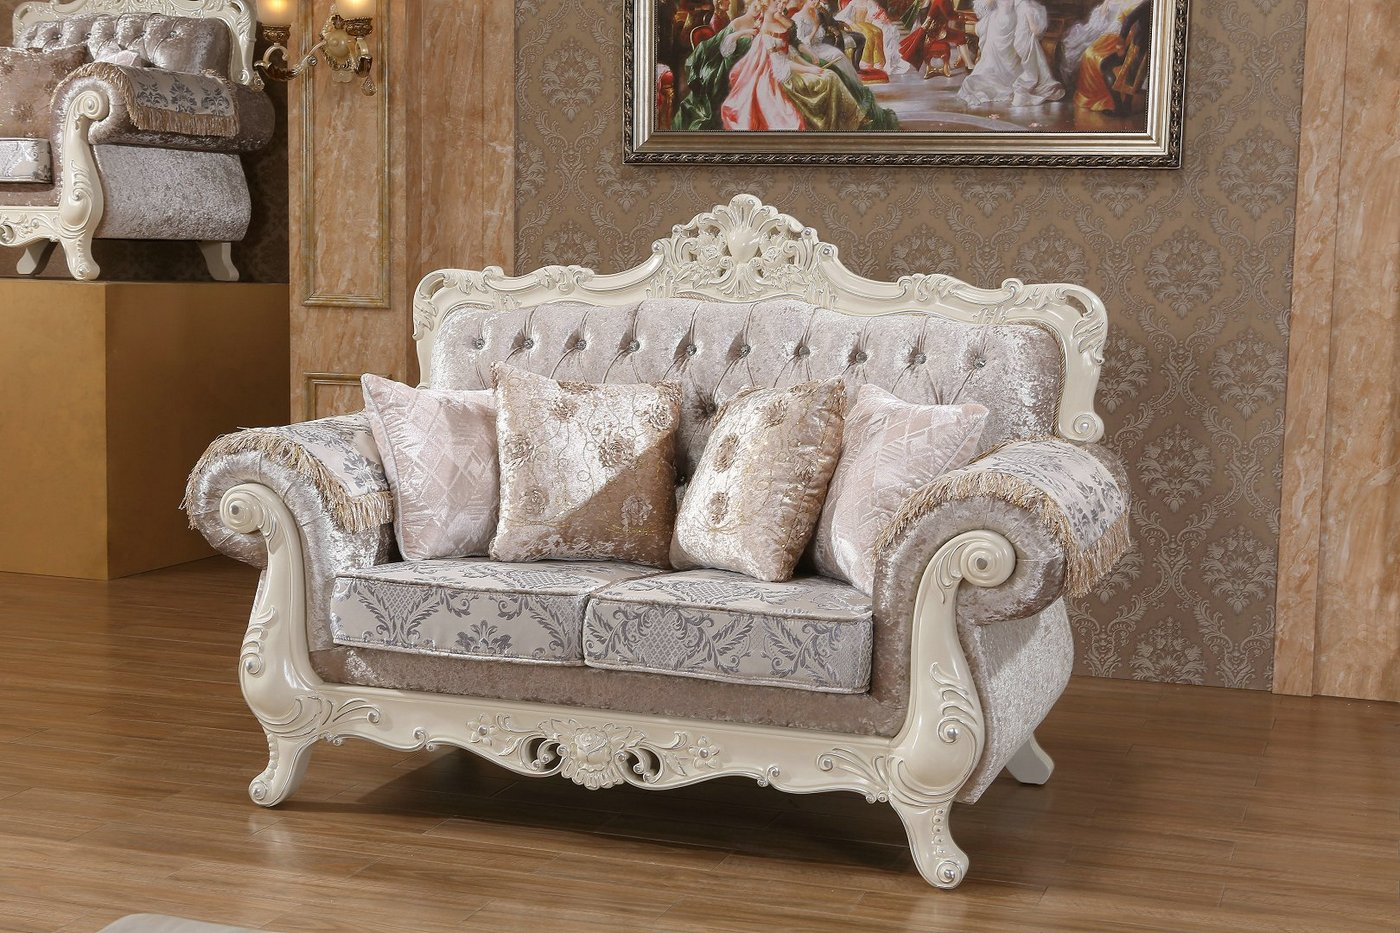 Venice Silver Crystal Tufted Sofa Loveseat Set With Pearl White Frame